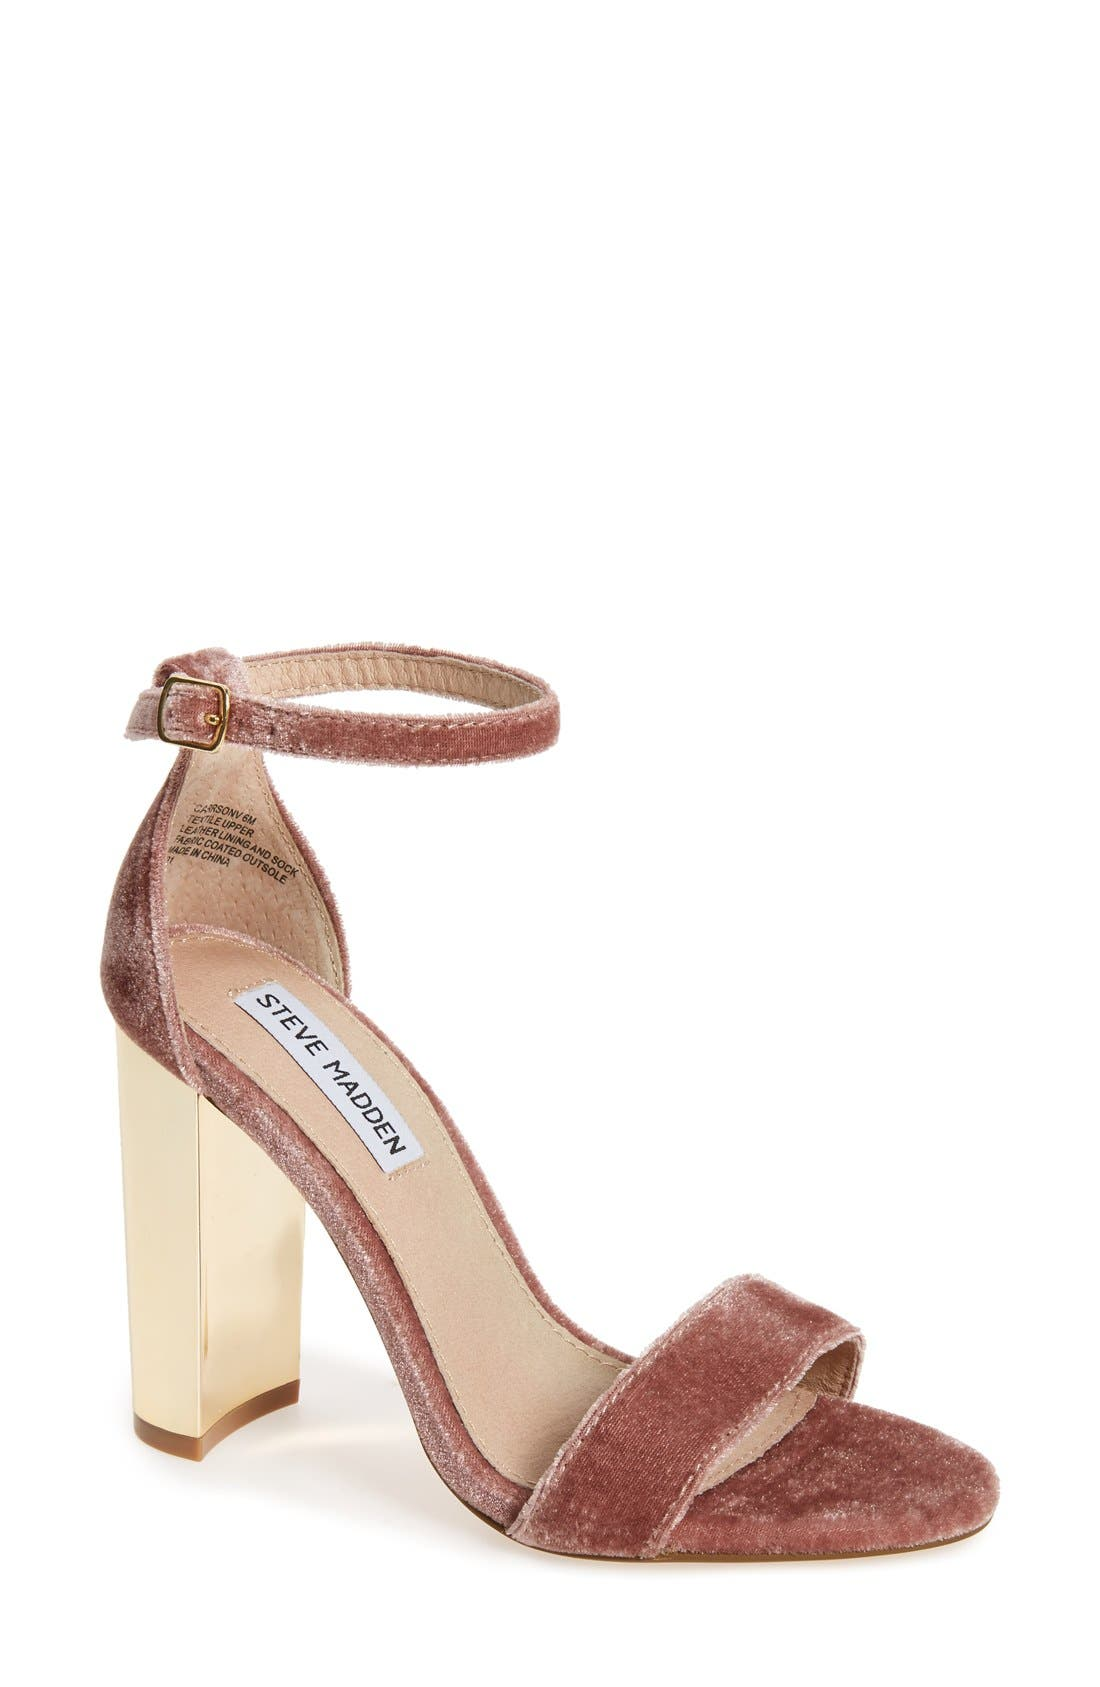 Alternate Image 1 Selected - Steve Madden Carrson Strappy Sandal (Women)